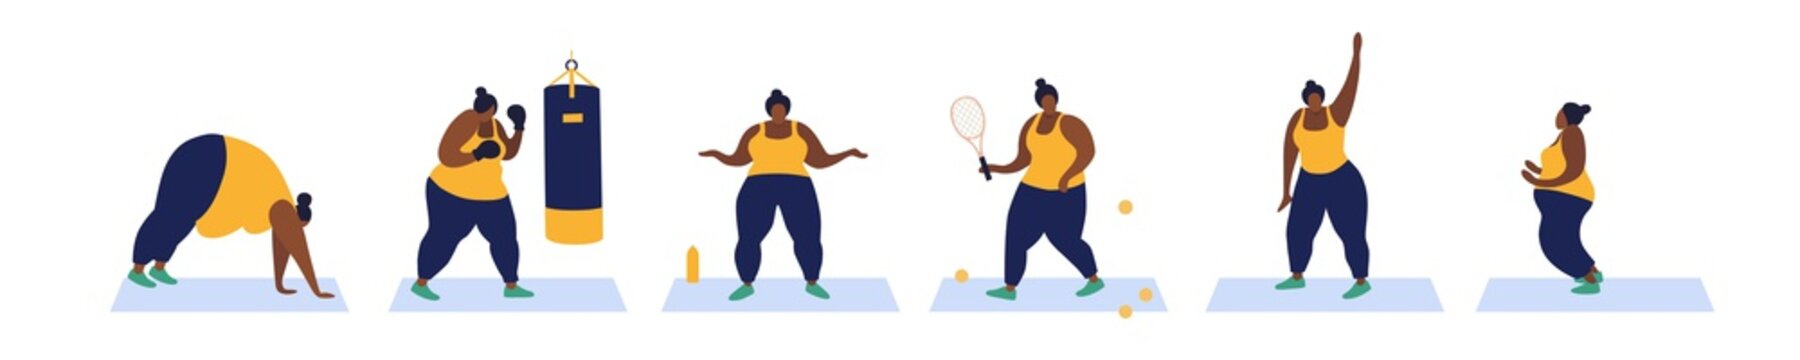 Collection of exercise for weight loss. A full-bodied African American woman is engaged in various sports. Overweight problems. Vector flat illustration on white isolated background.